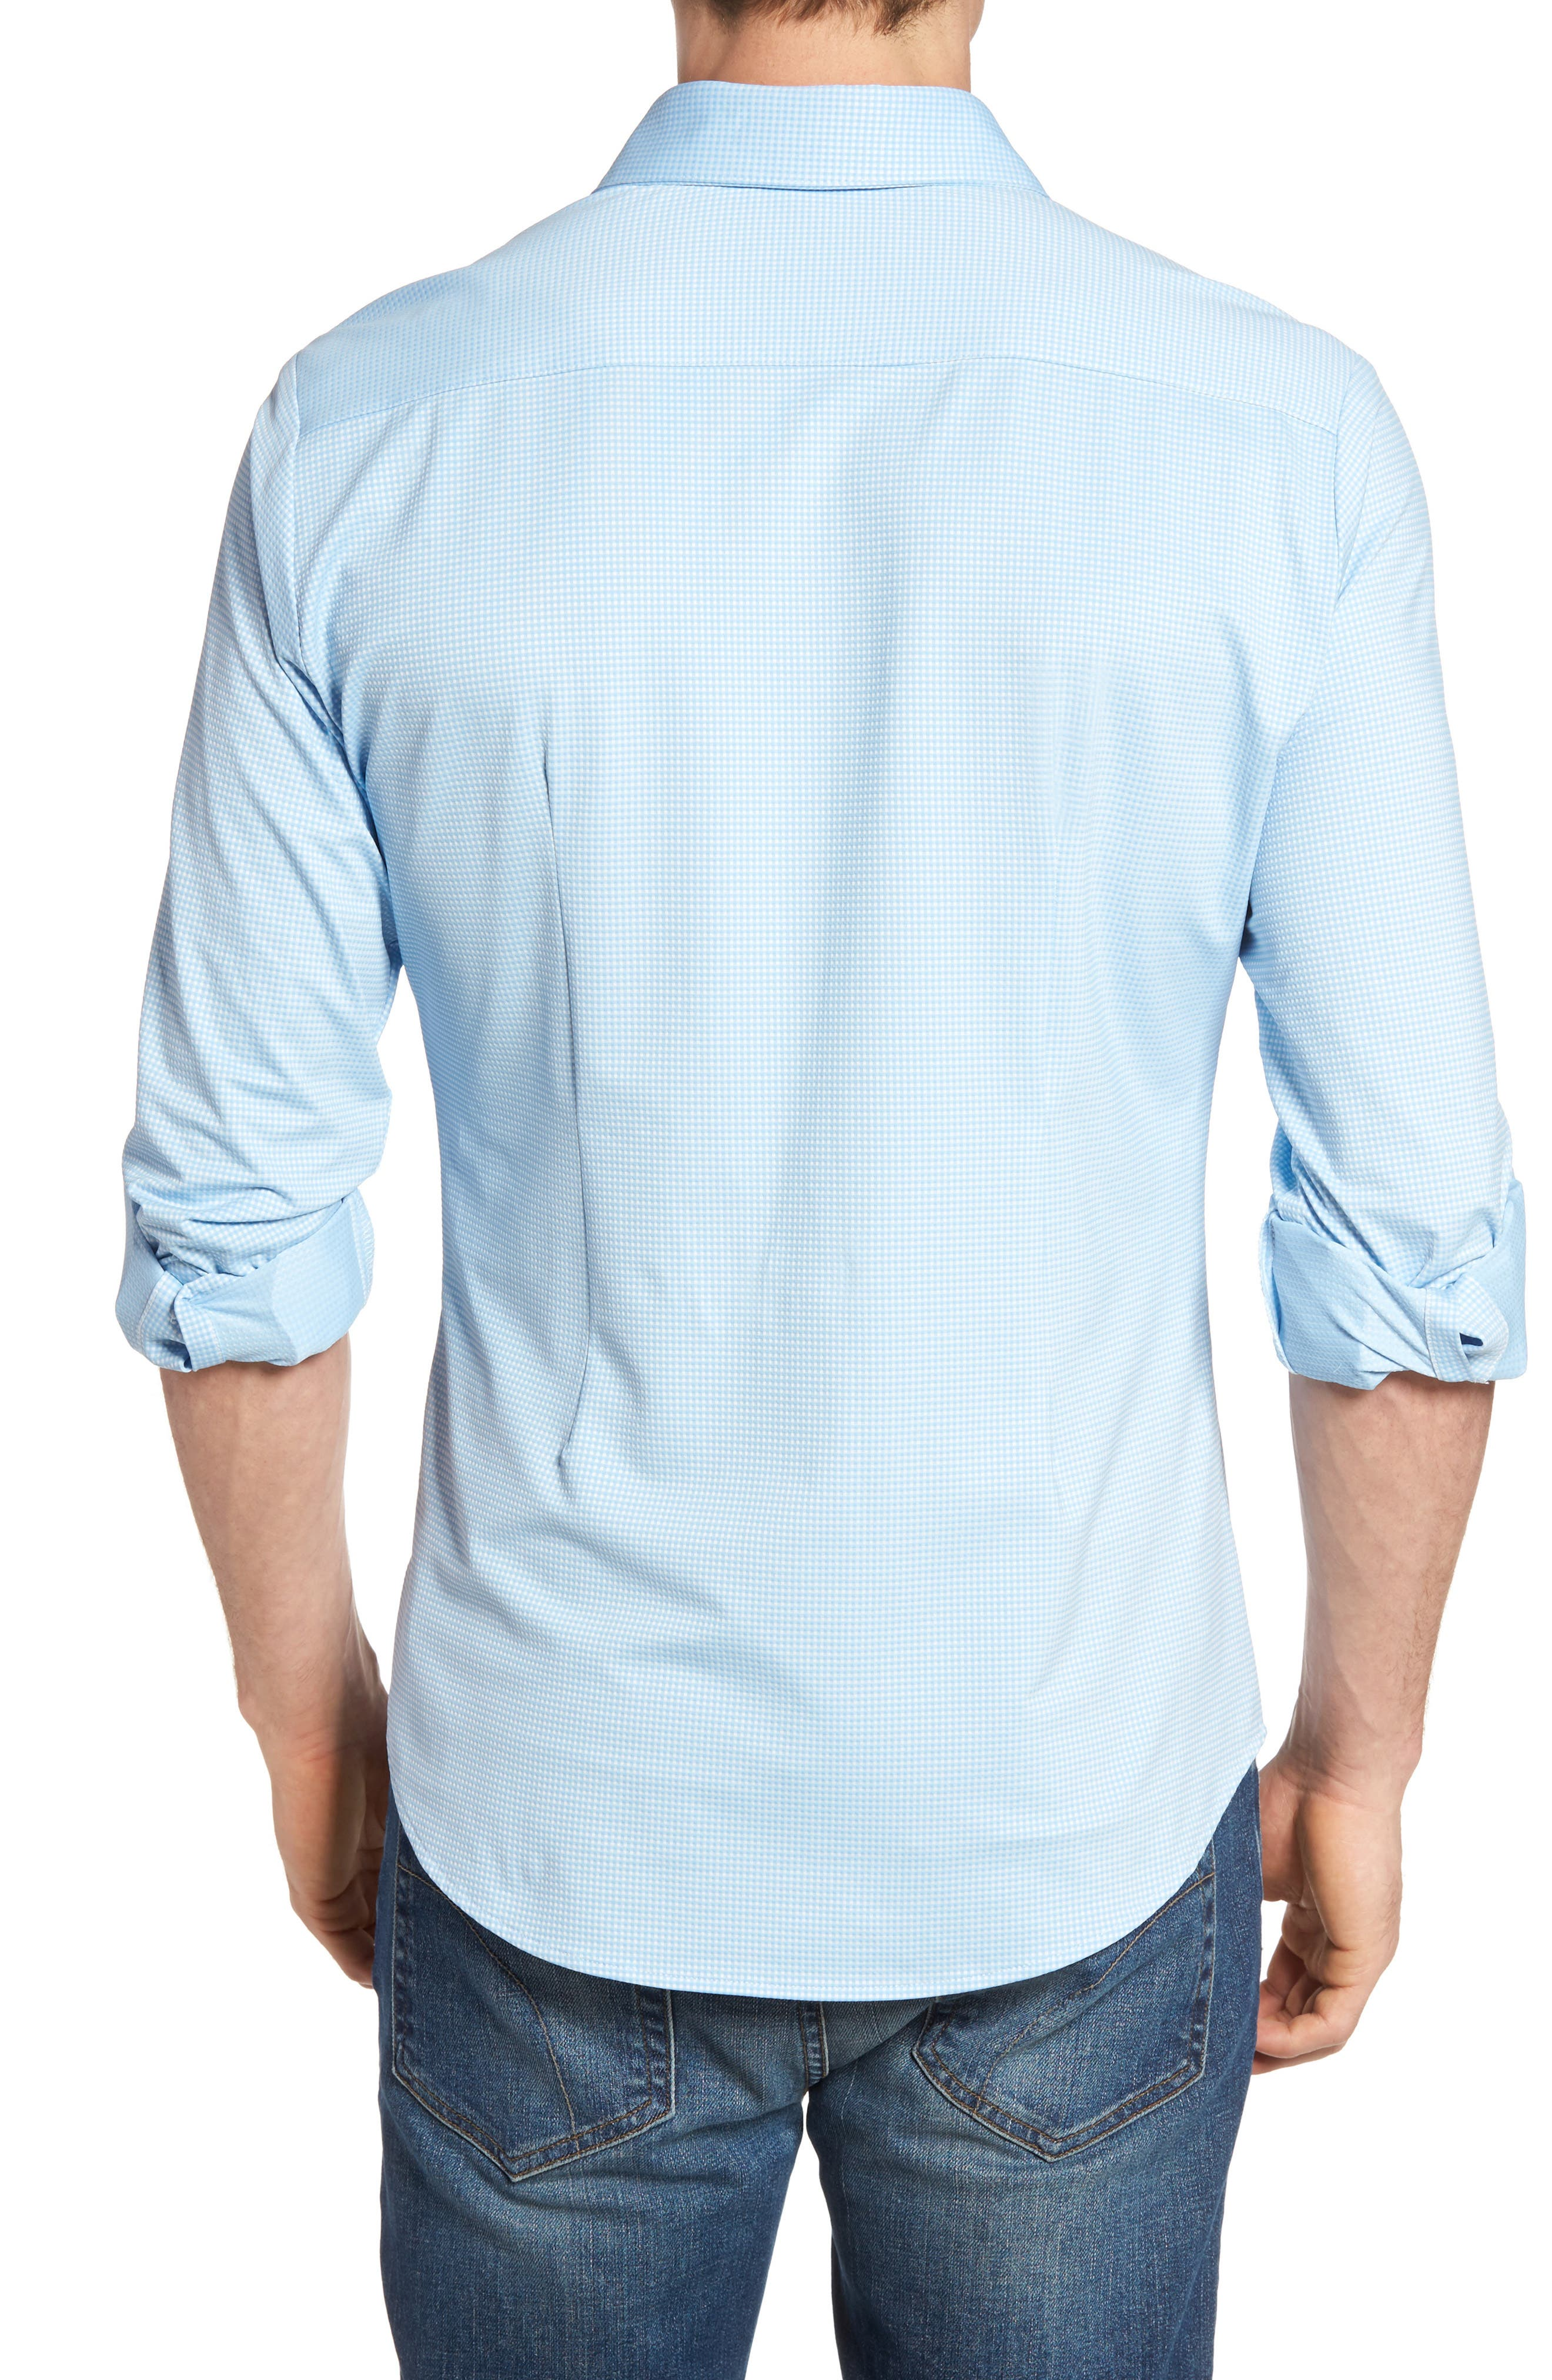 Whitman Dobby Gingham Performance Sport Shirt,                             Alternate thumbnail 2, color,                             BLUE